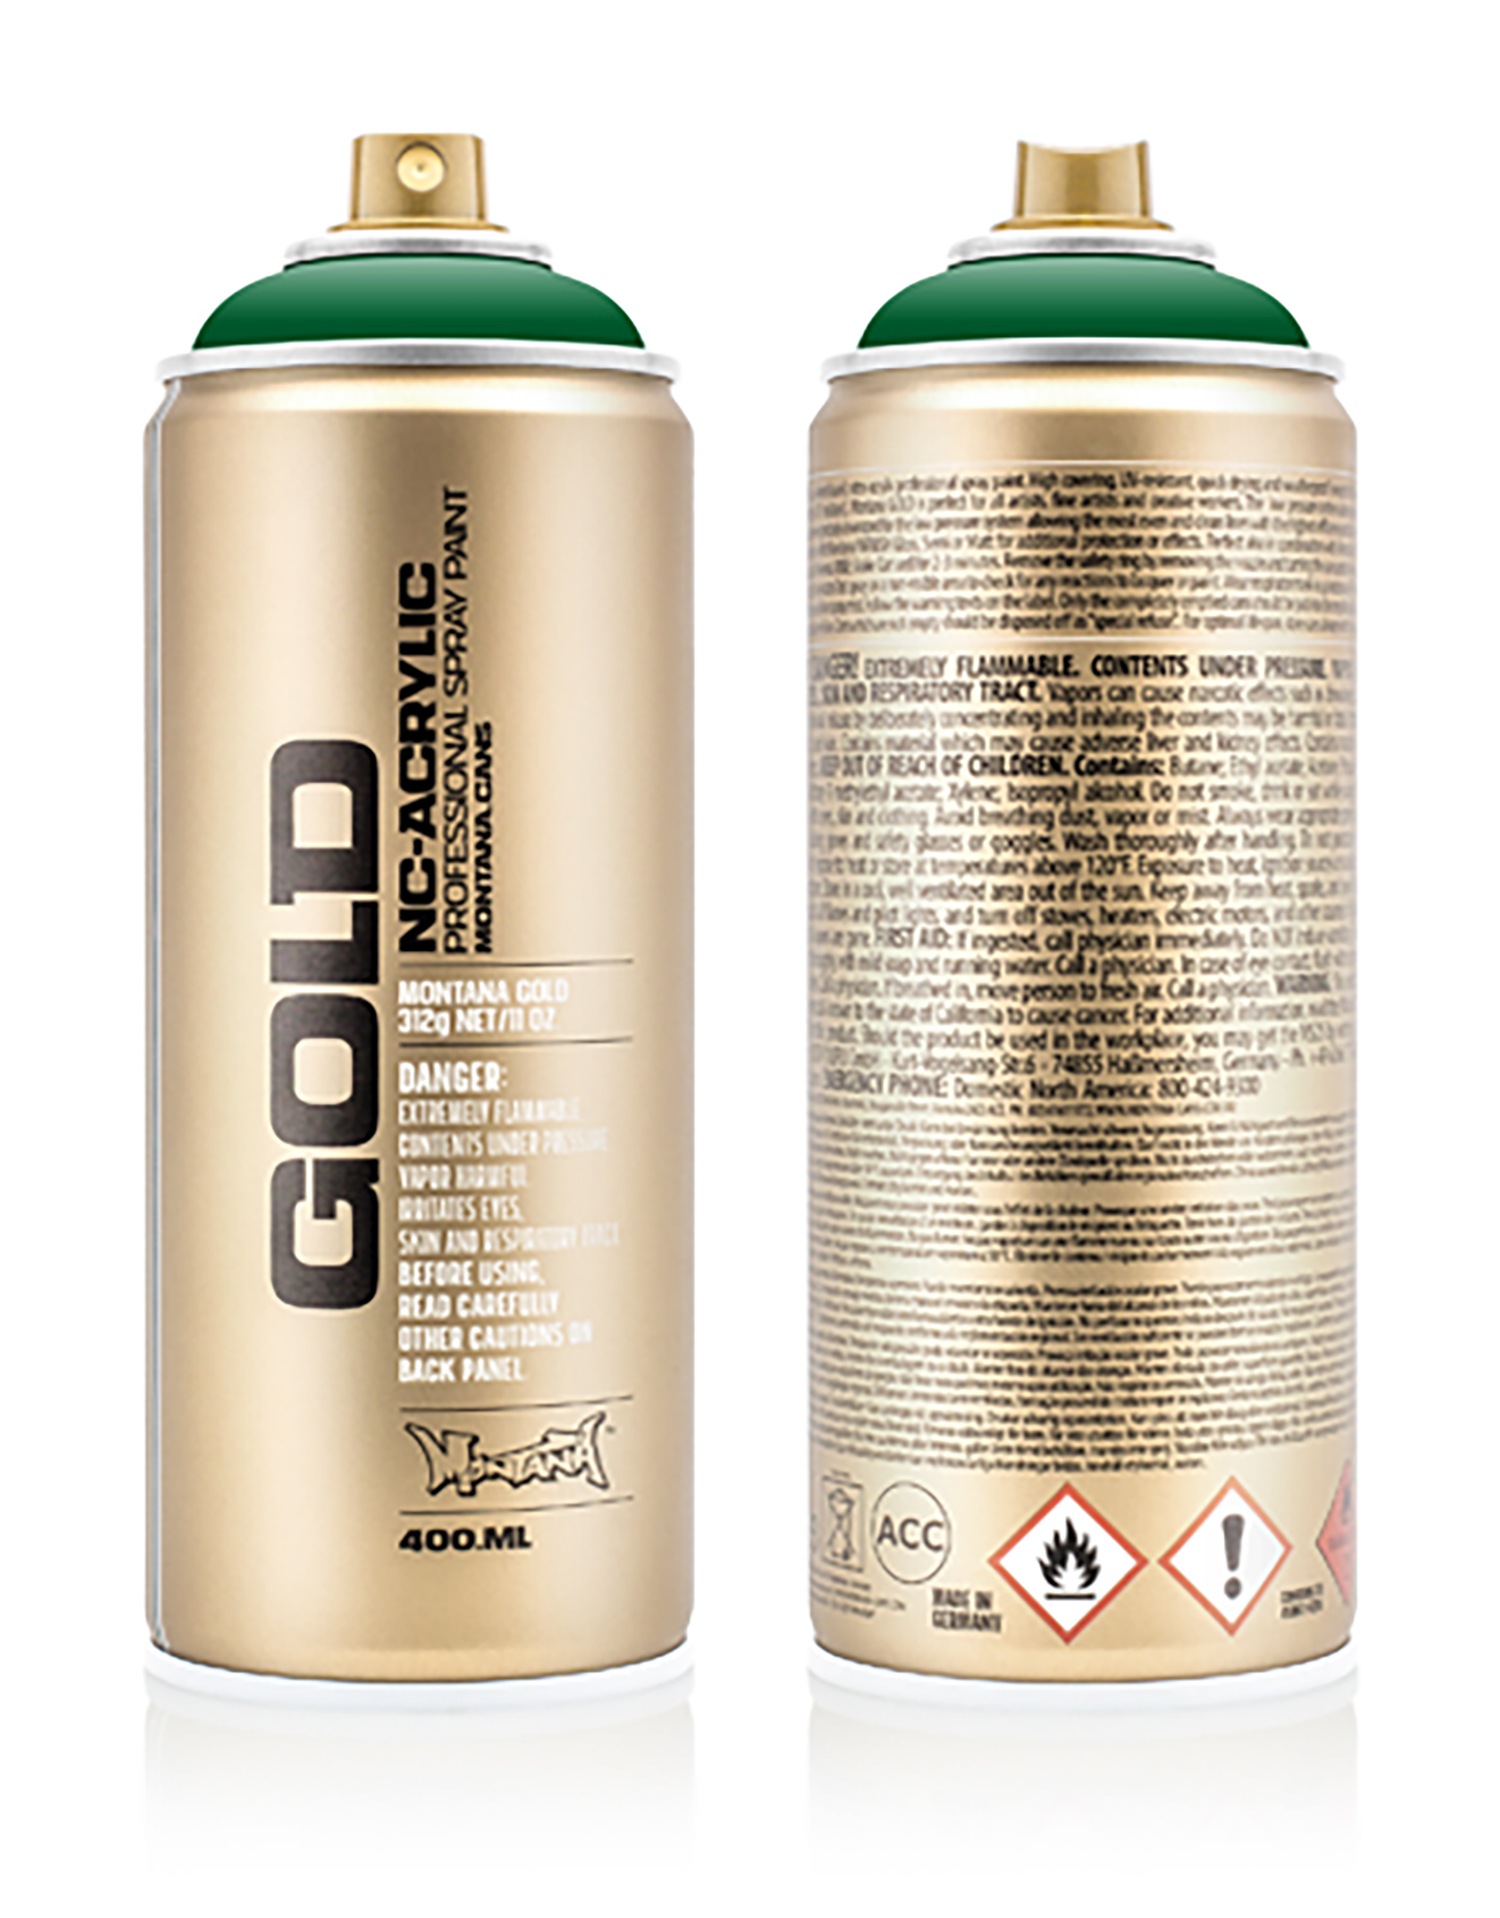 MONTANA-GOLD-SPRAY-400ML-G-6060